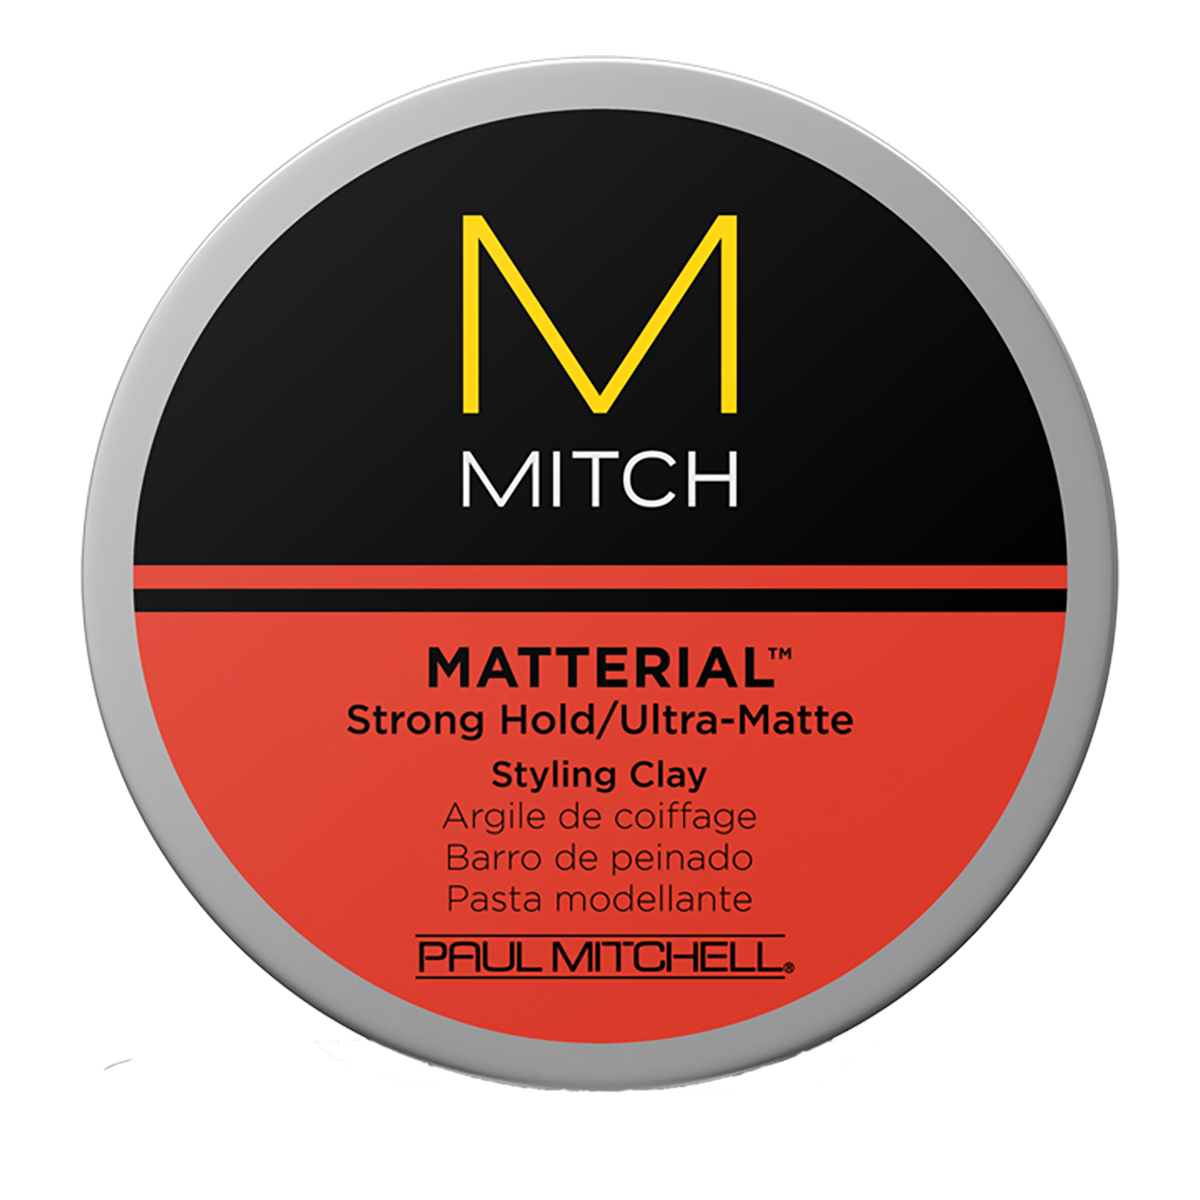 Mitch Matterial >> MITCH - Matterial Styling Clay